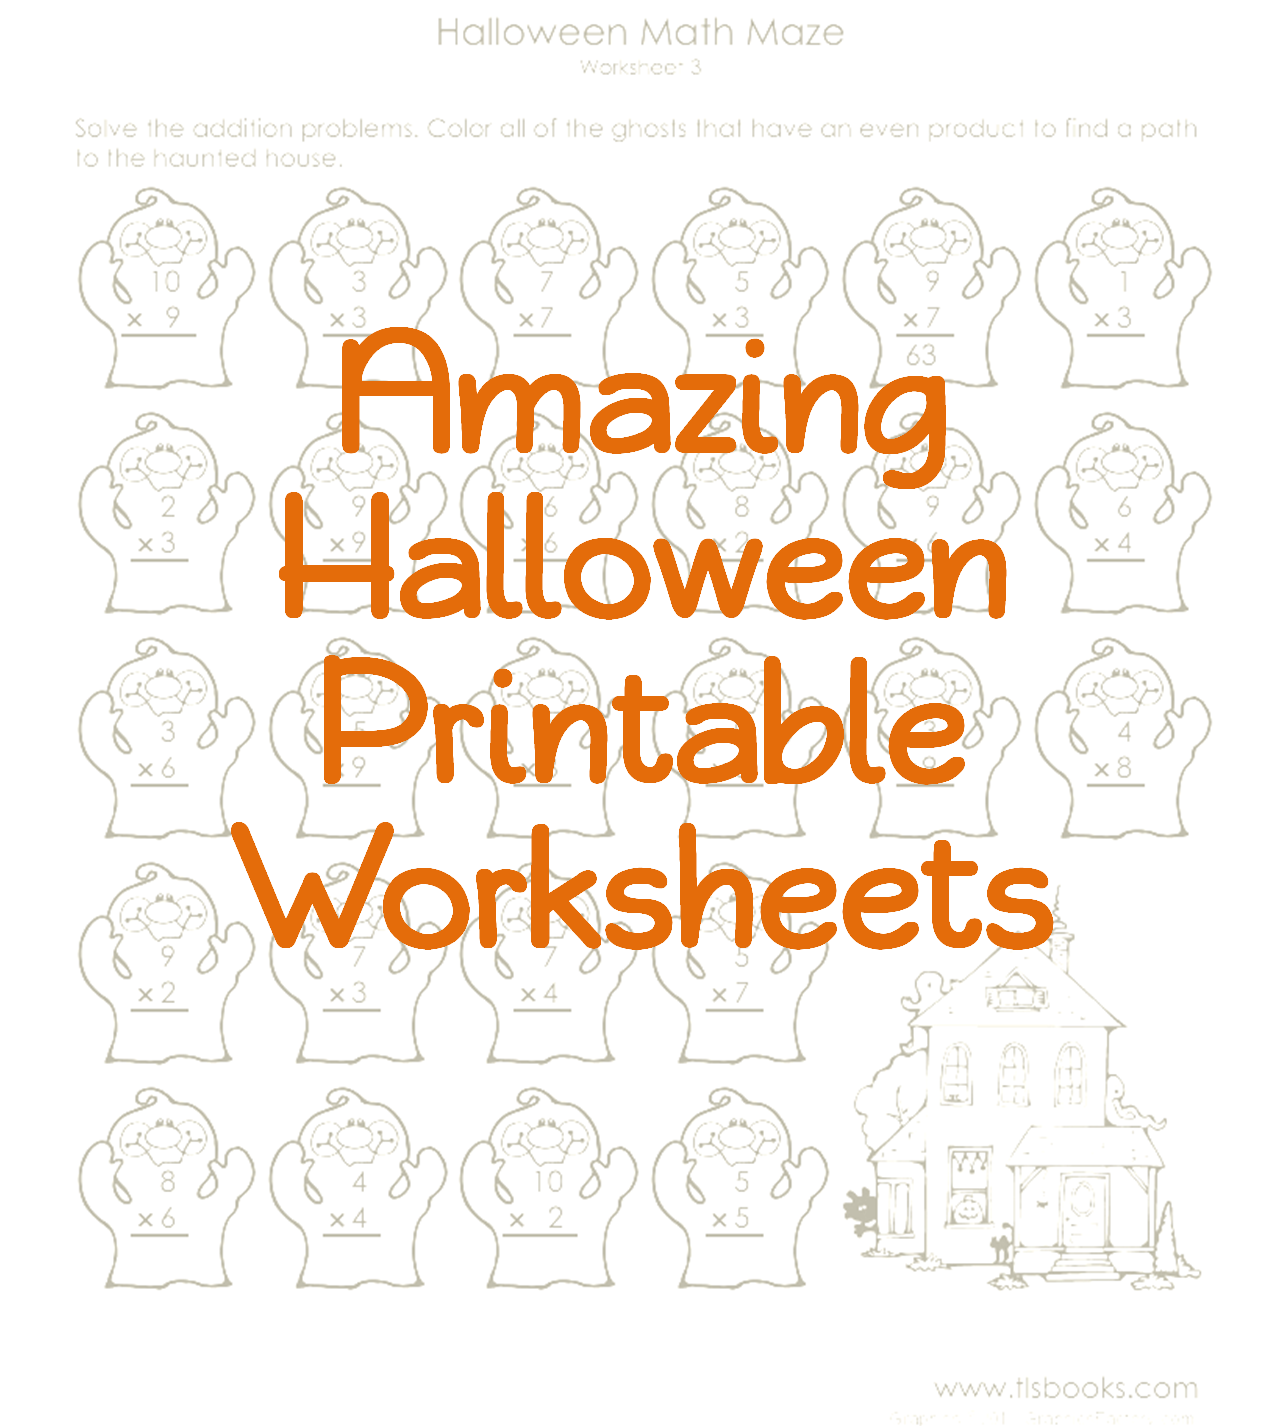 Halloween Printable Worksheets Add A Little Learning In With All That Candy [ 1427 x 1277 Pixel ]